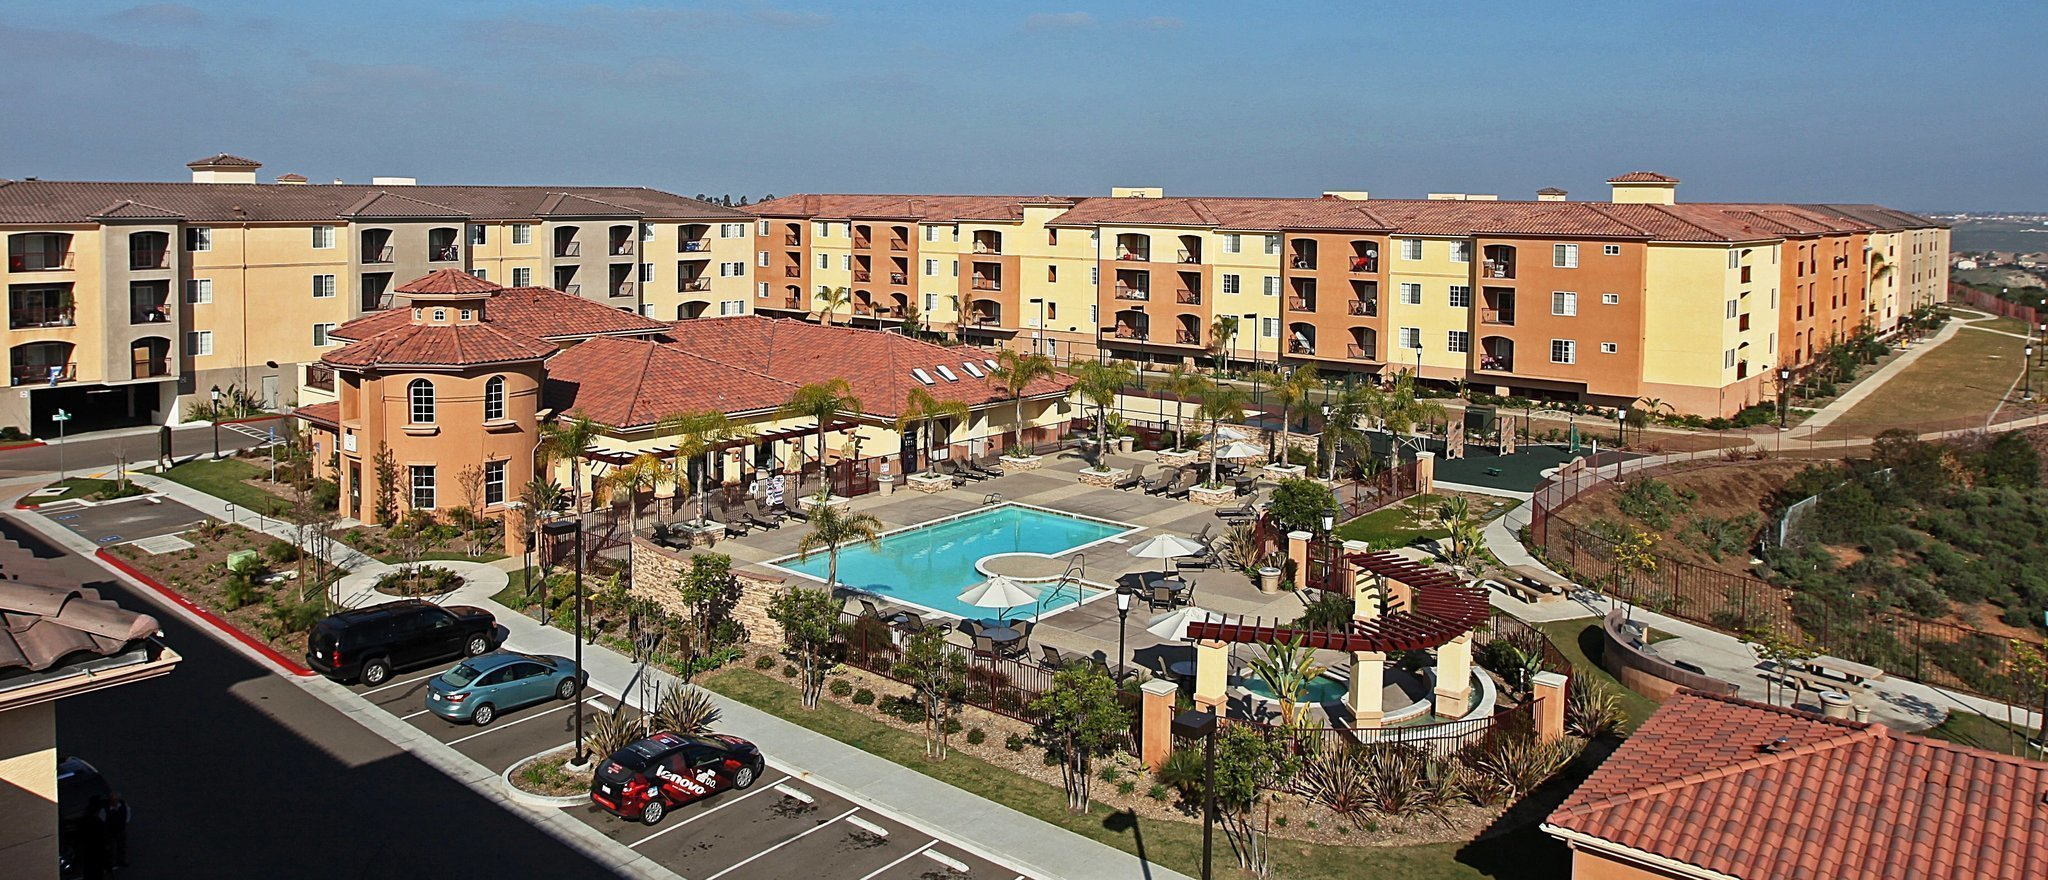 Greenfield Village apartments sold for $150 million - The San Diego ...